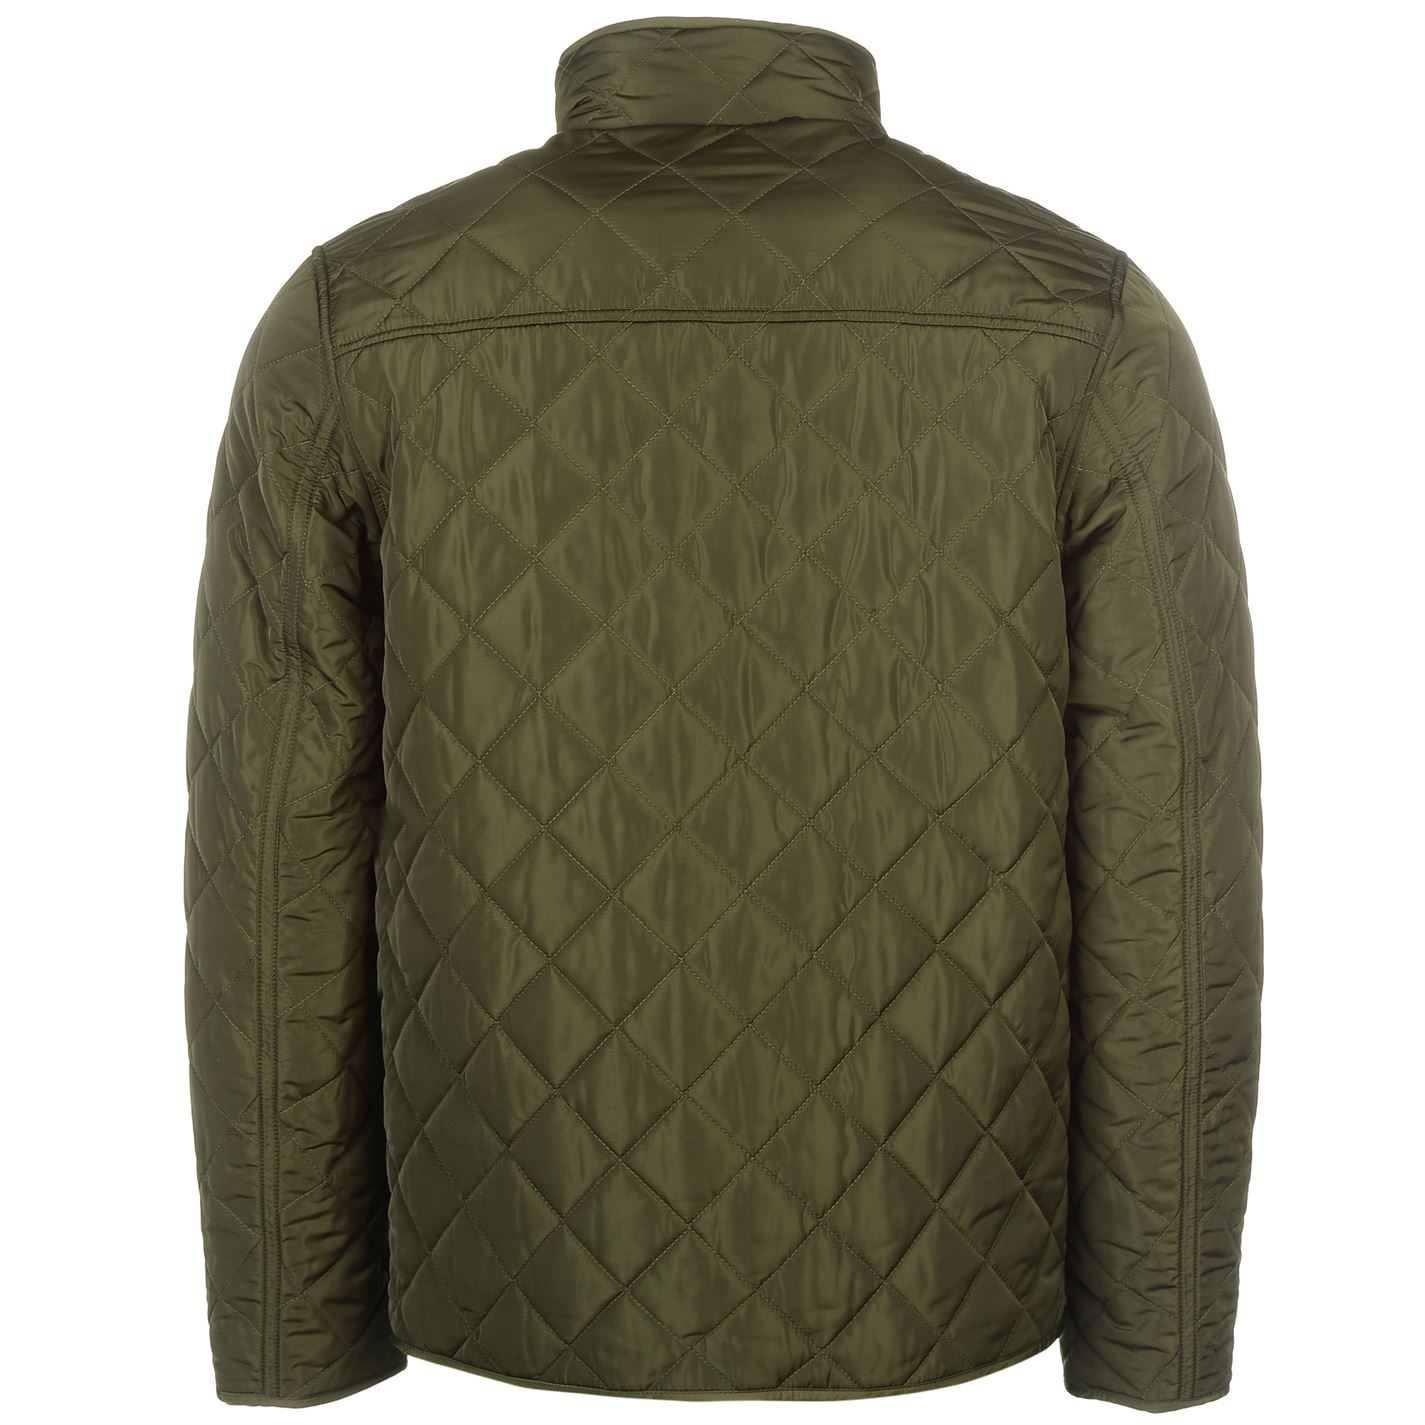 Mens-Firetrap-Kingdom-Jacket-Quilted-Long-Sleeve-New thumbnail 13